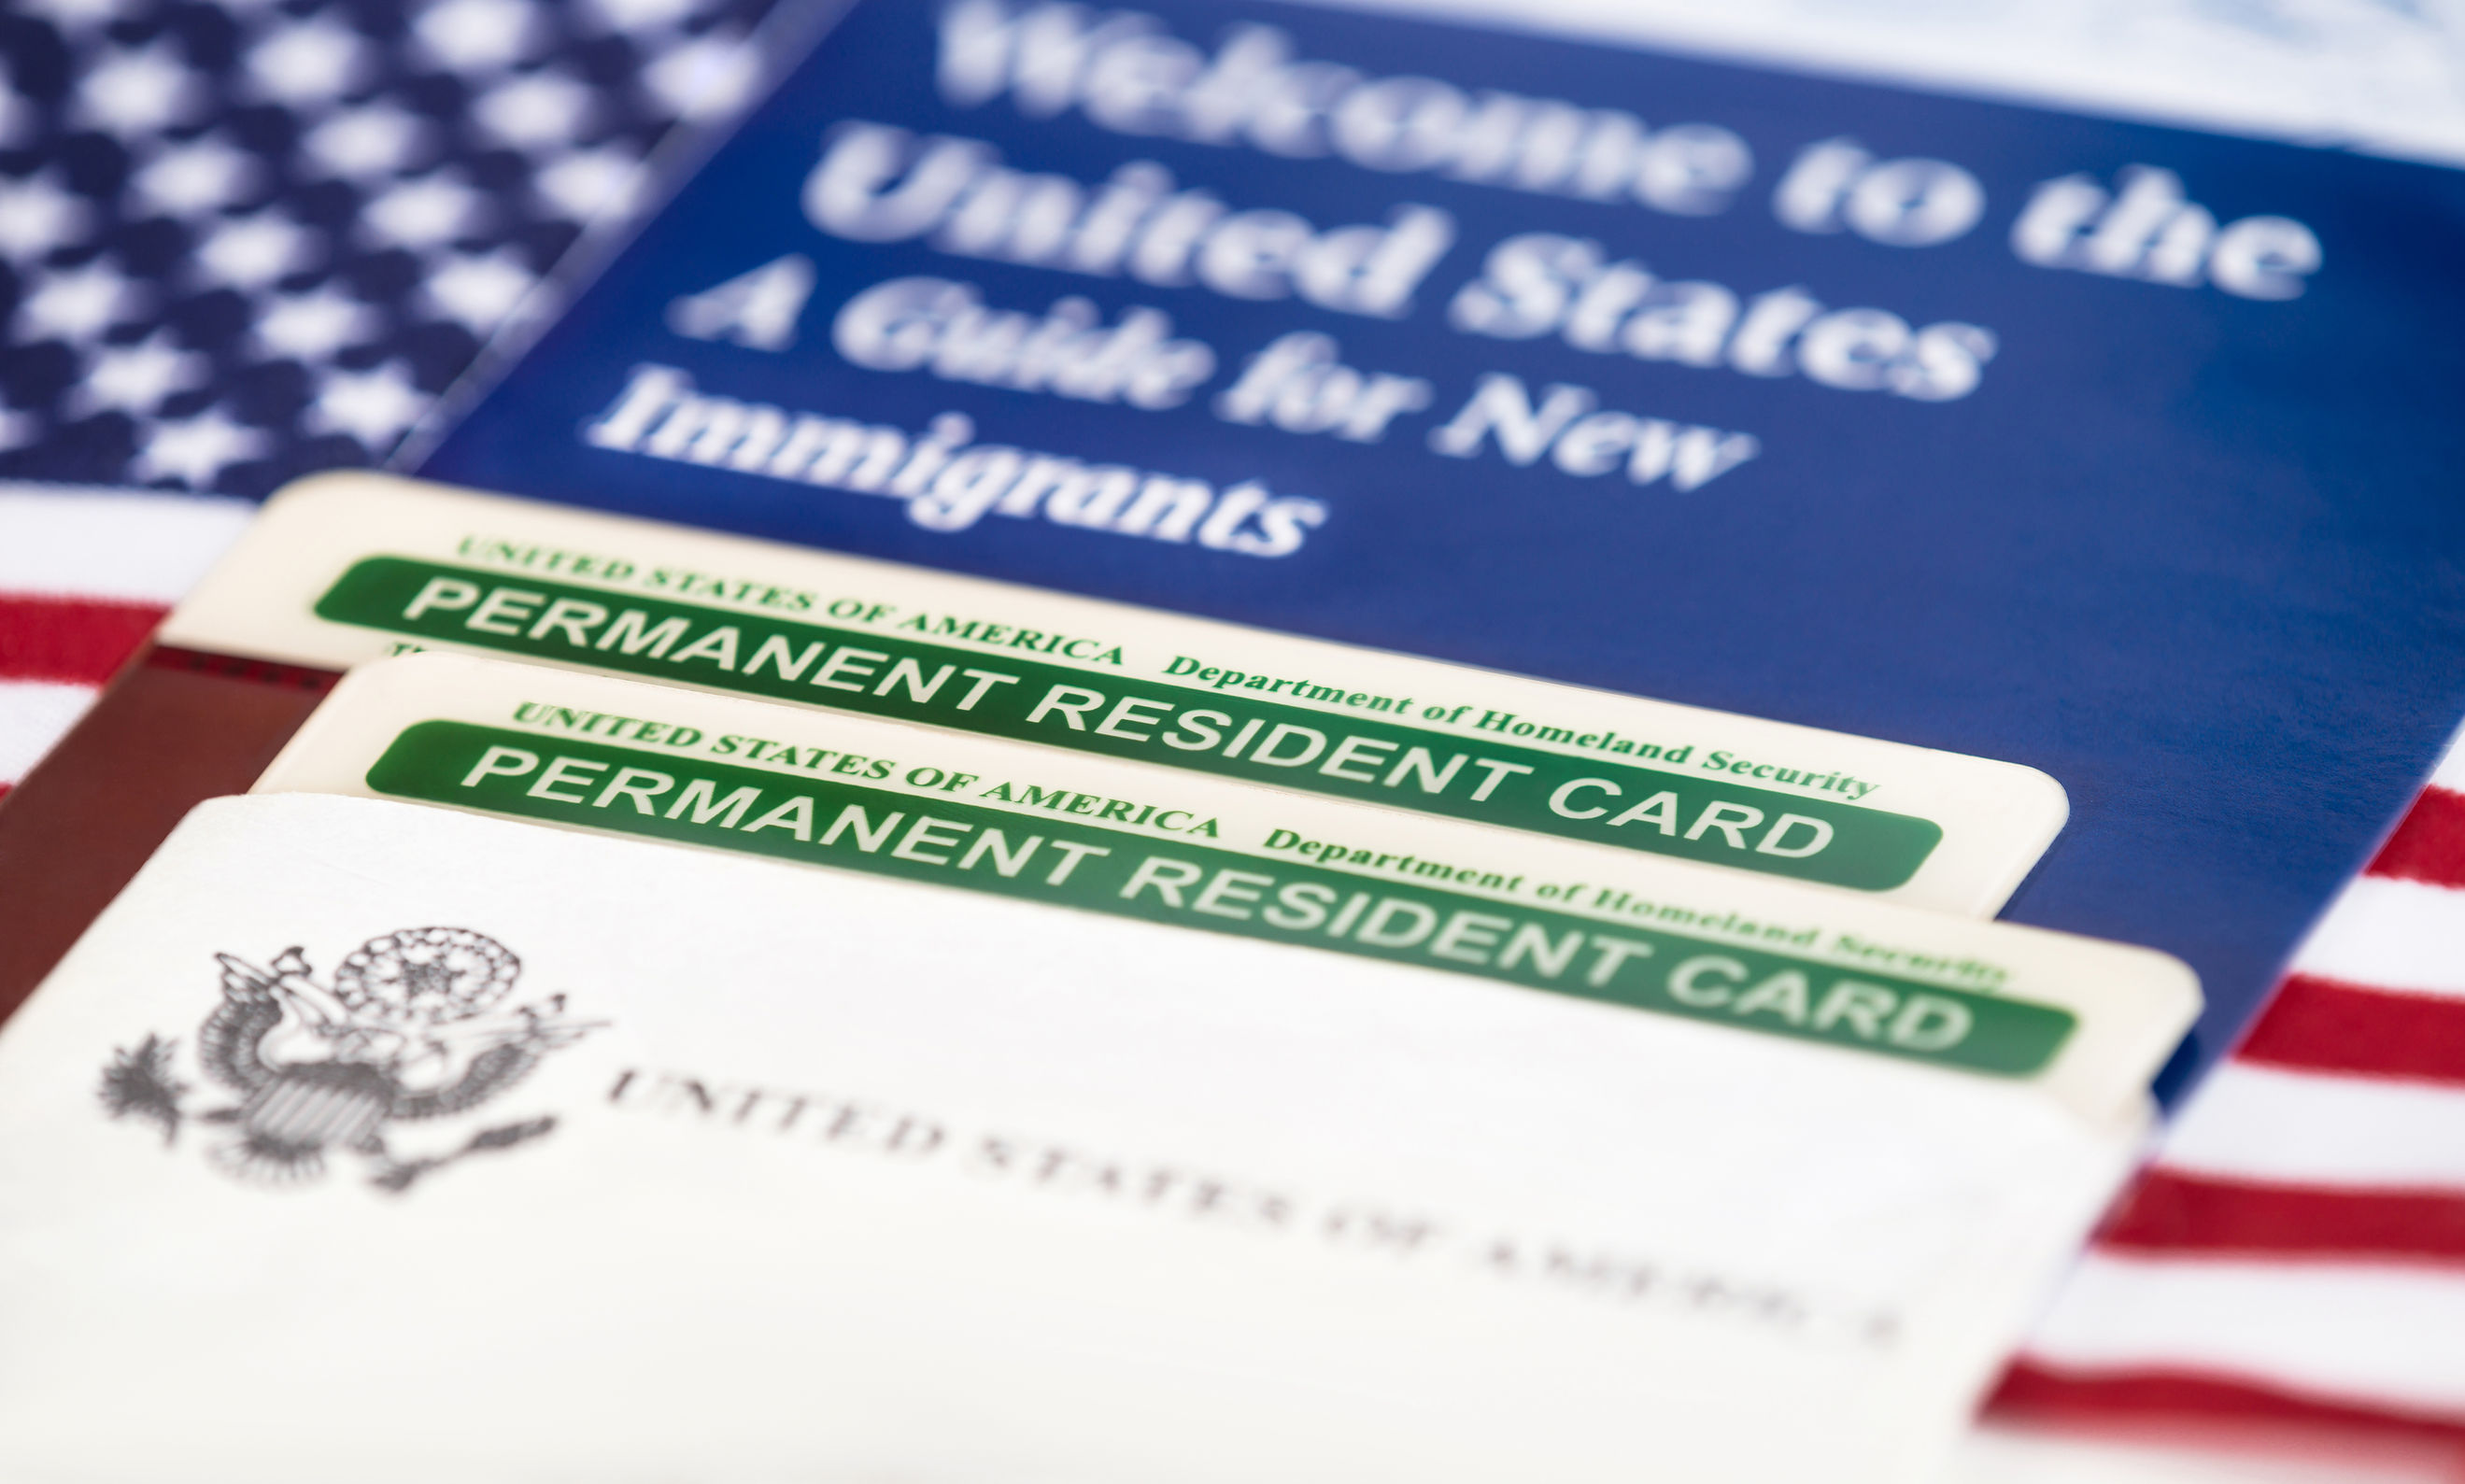 permanent resident card released under the new u.s. immigration law guidelines